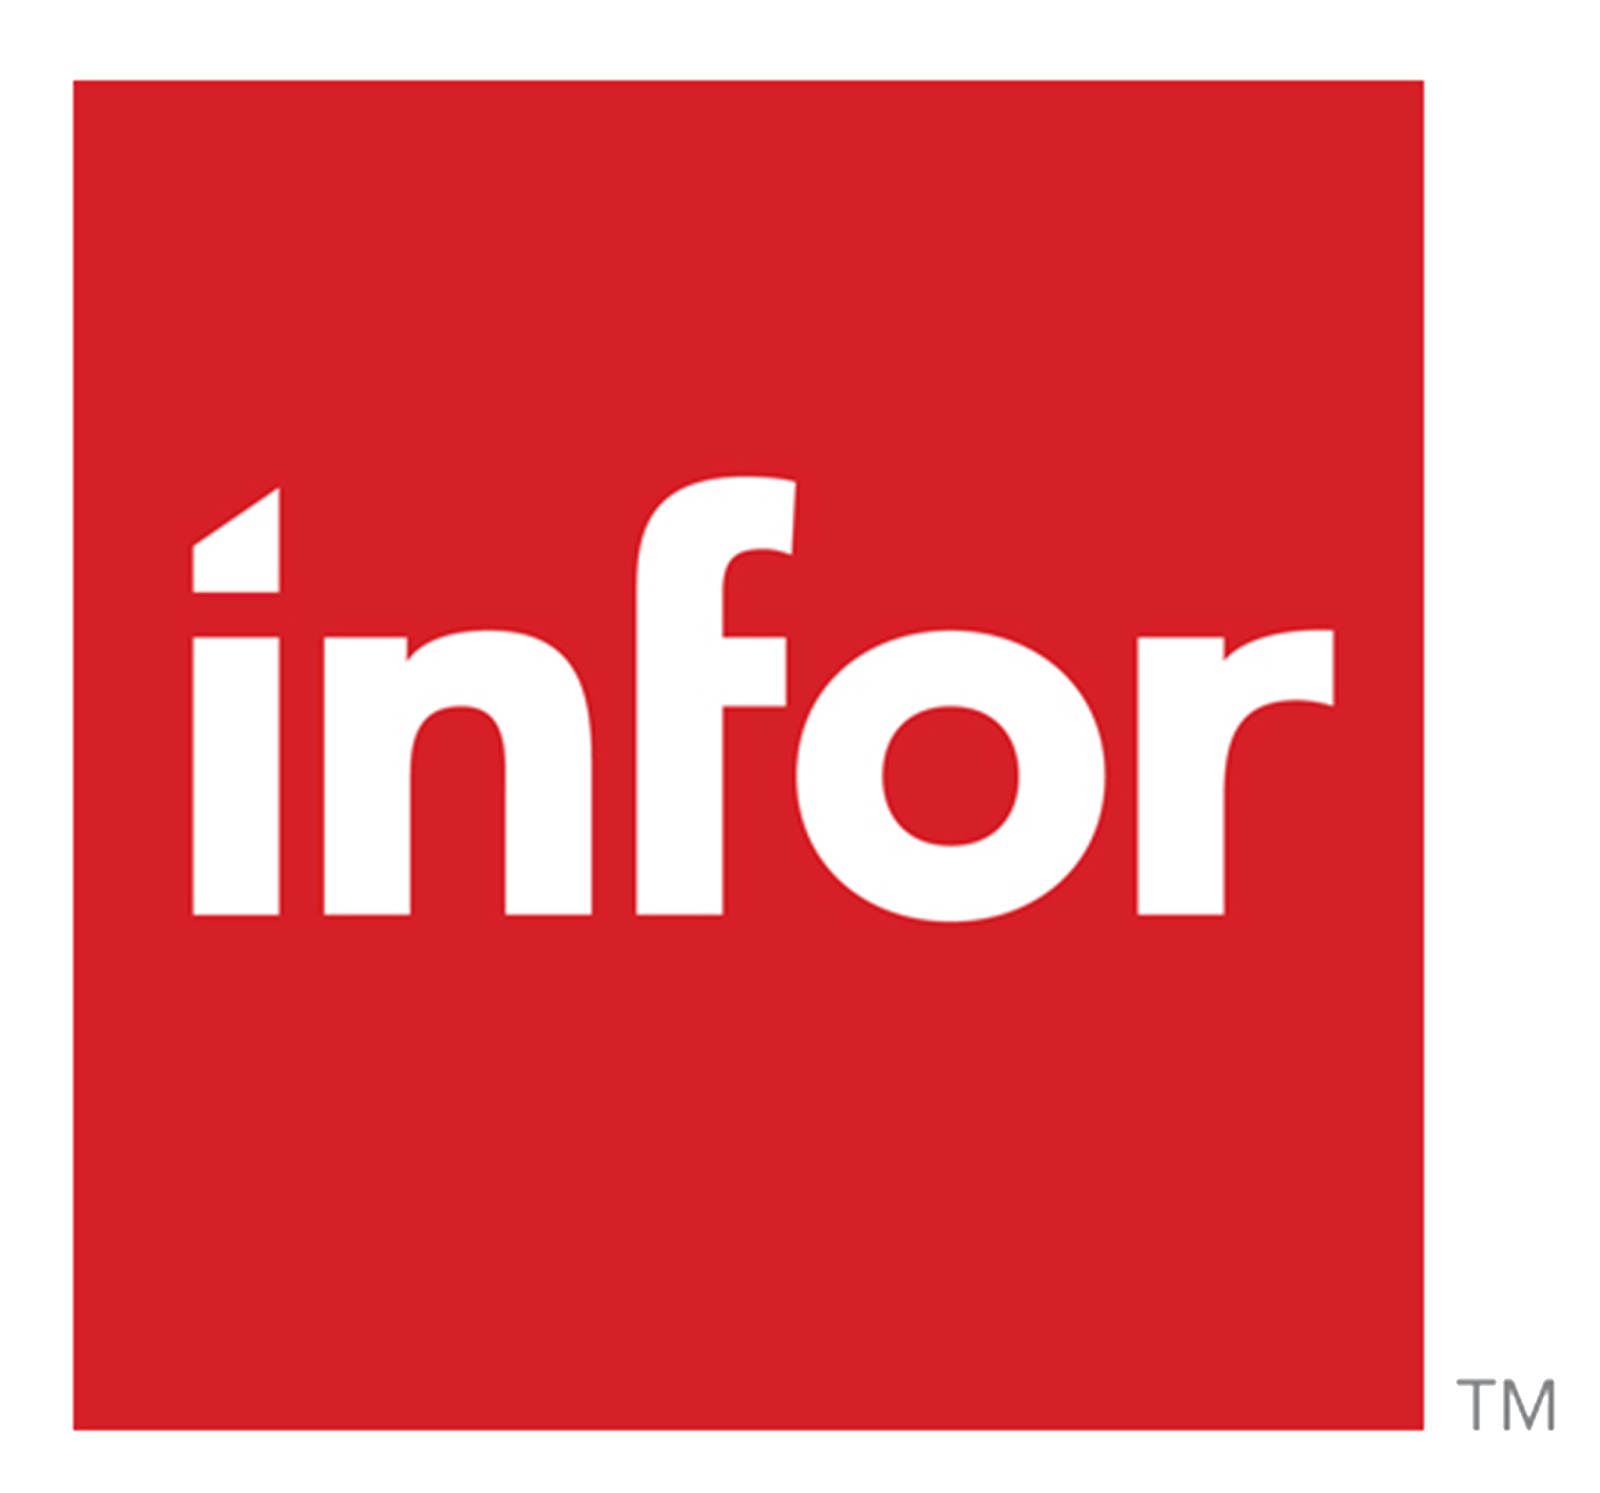 Fresher (2012/2013) openings in Infor, Hyderabad